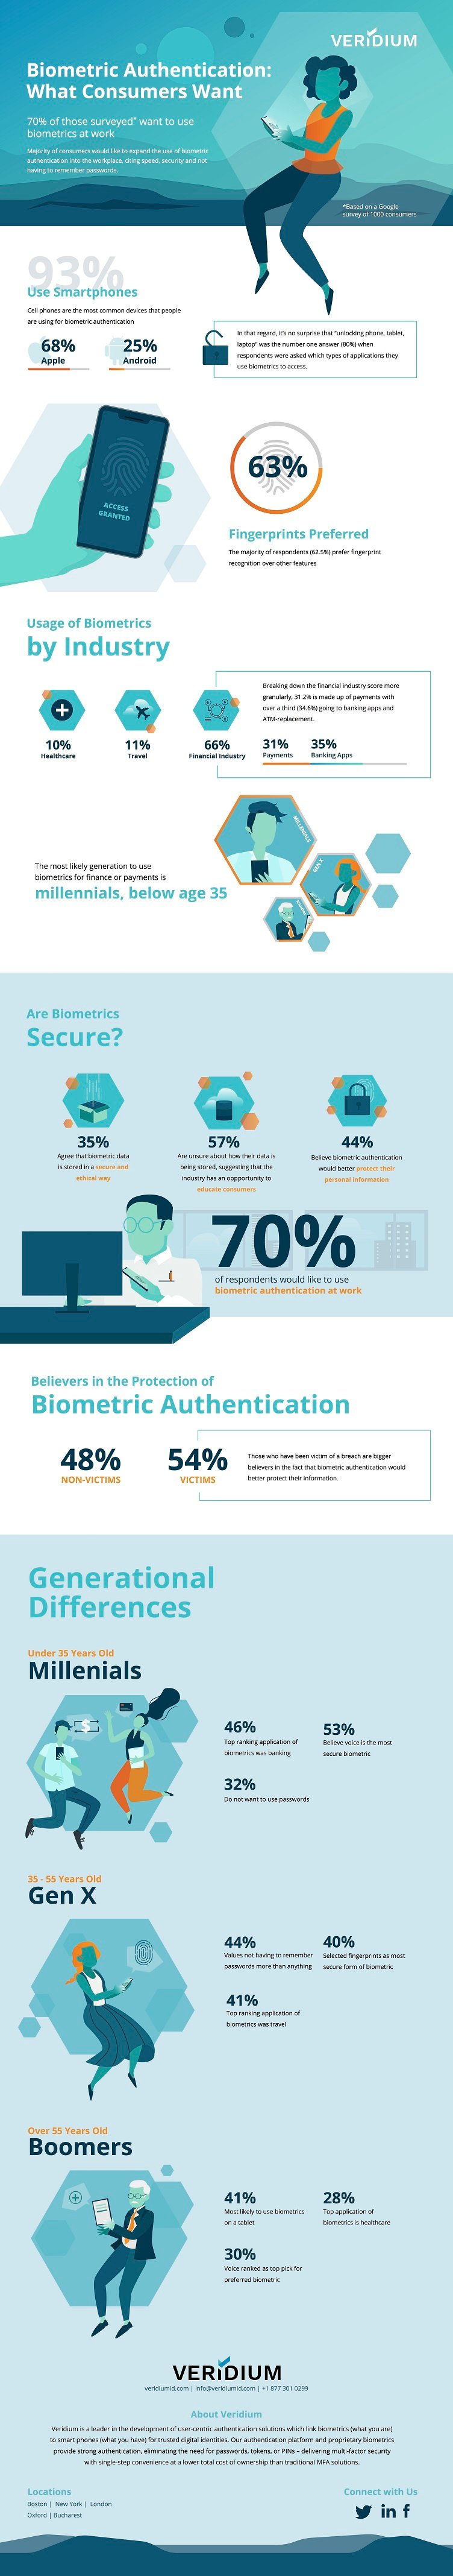 Consumers want biometrics in the workplace | Electronics360